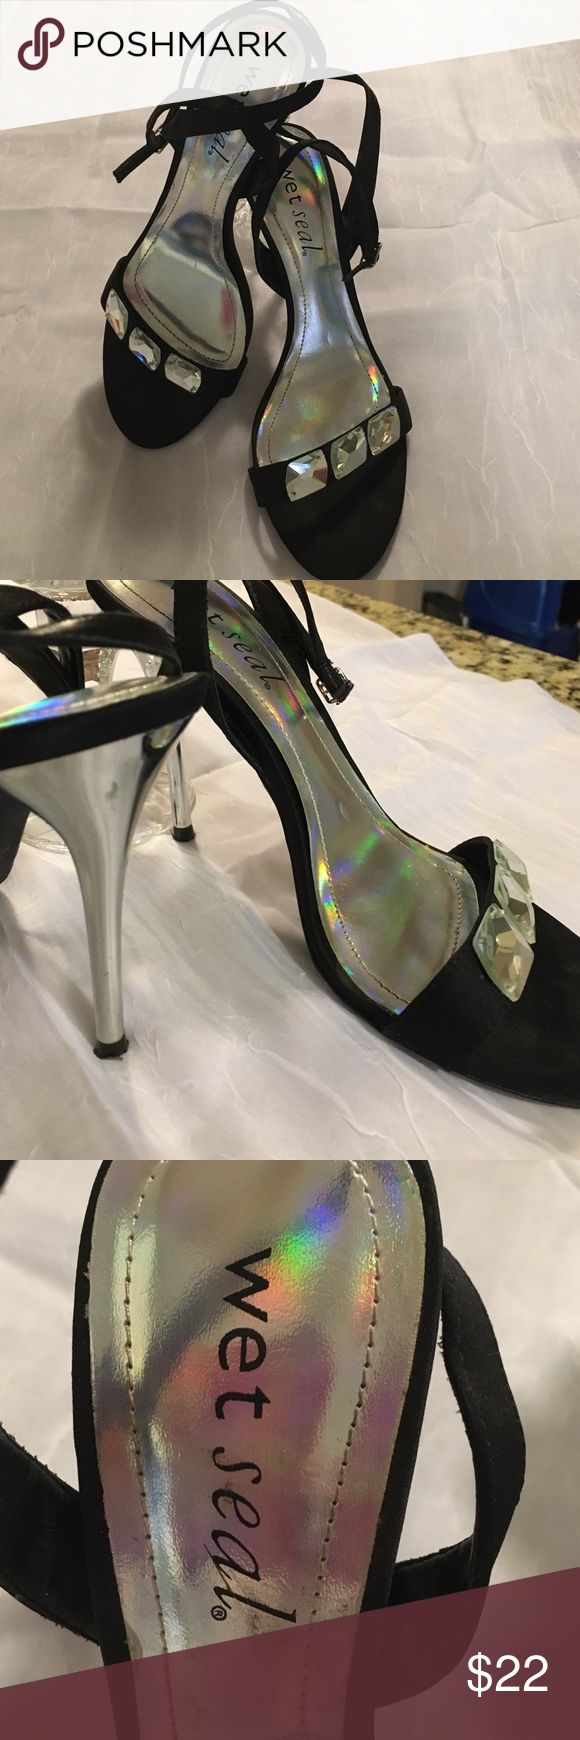 """Wet seal HOT shoes NWOT these Wet Seal shoes are hot hot hot, black fabric w rhinestones across the toes, the heal is silver metal. The heal measures 4"""". Wet Seal Shoes"""